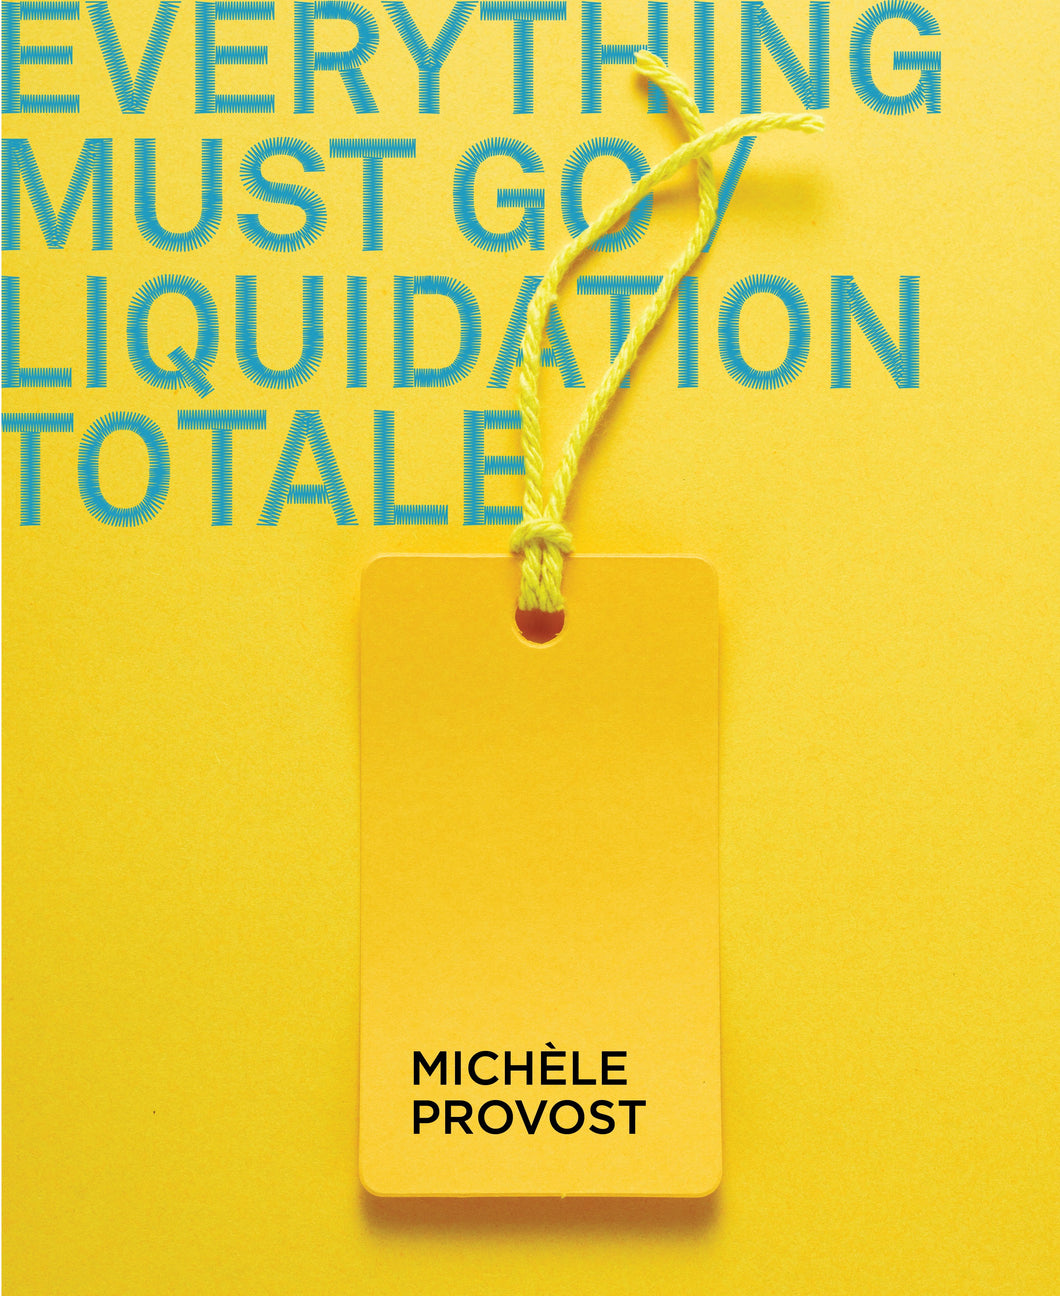 Everything must go |  Liquidation Totale : Michèle Provost